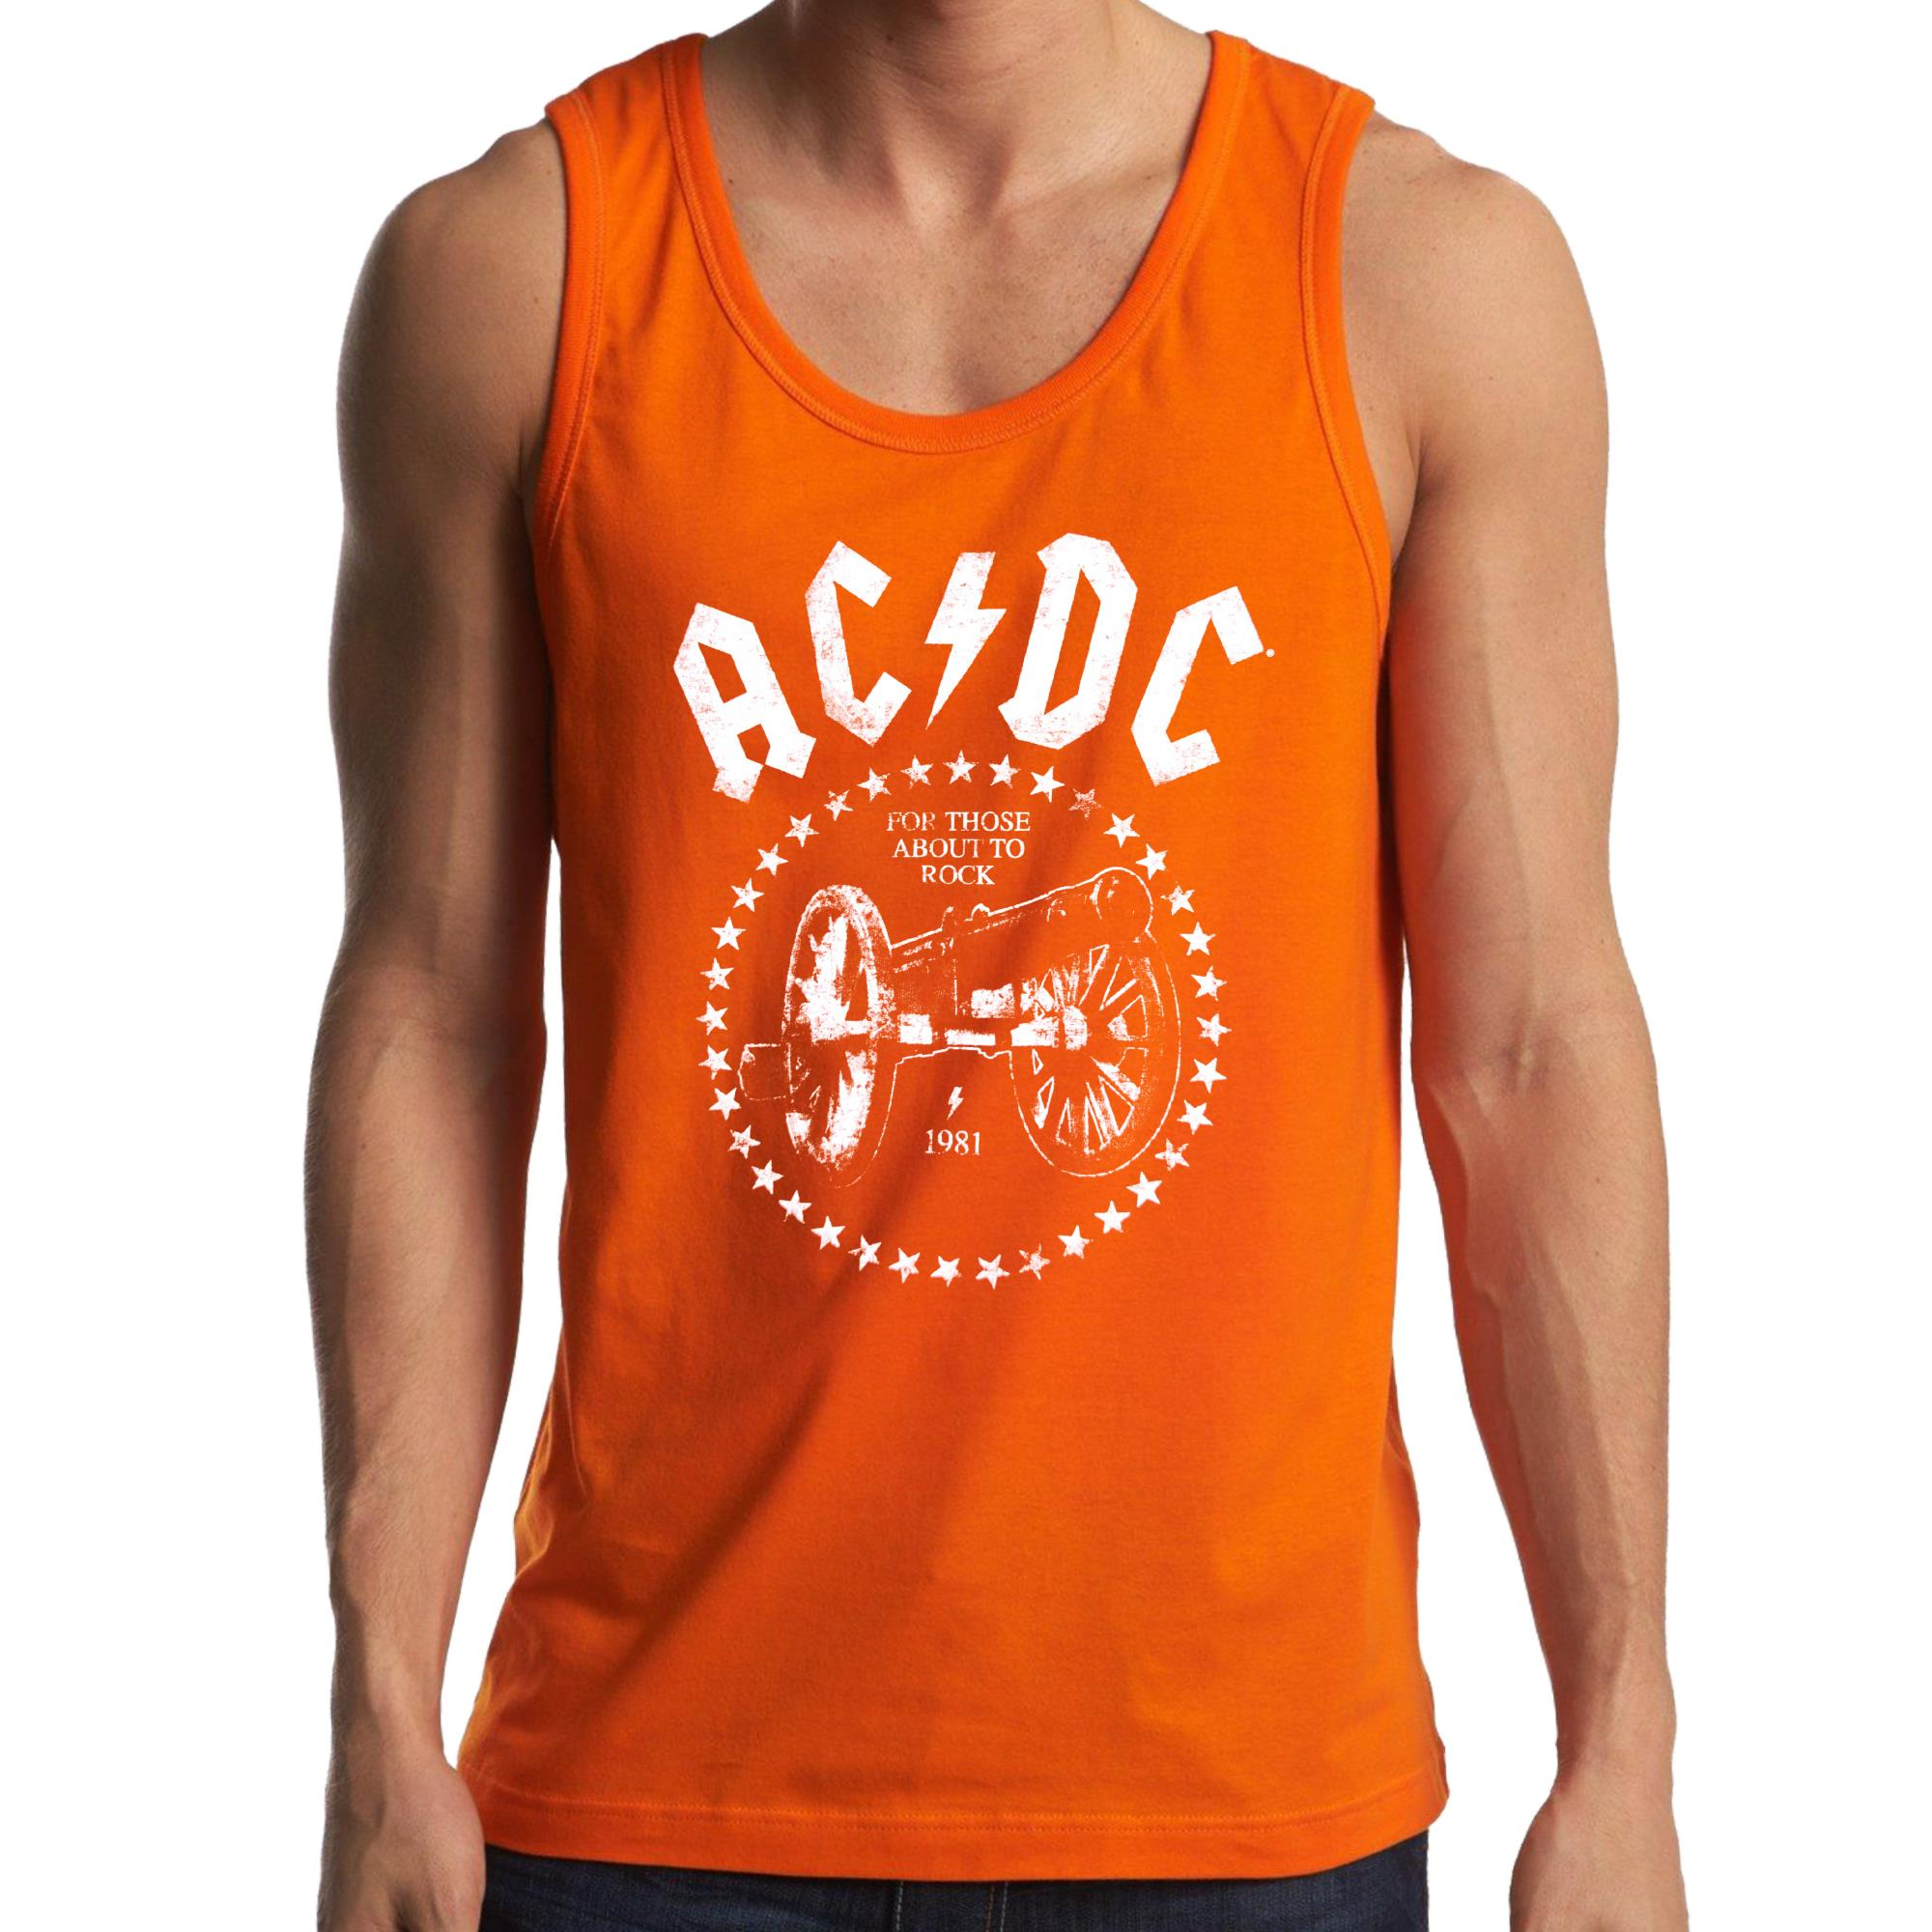 For Those About To Rock Tank Top (Import)